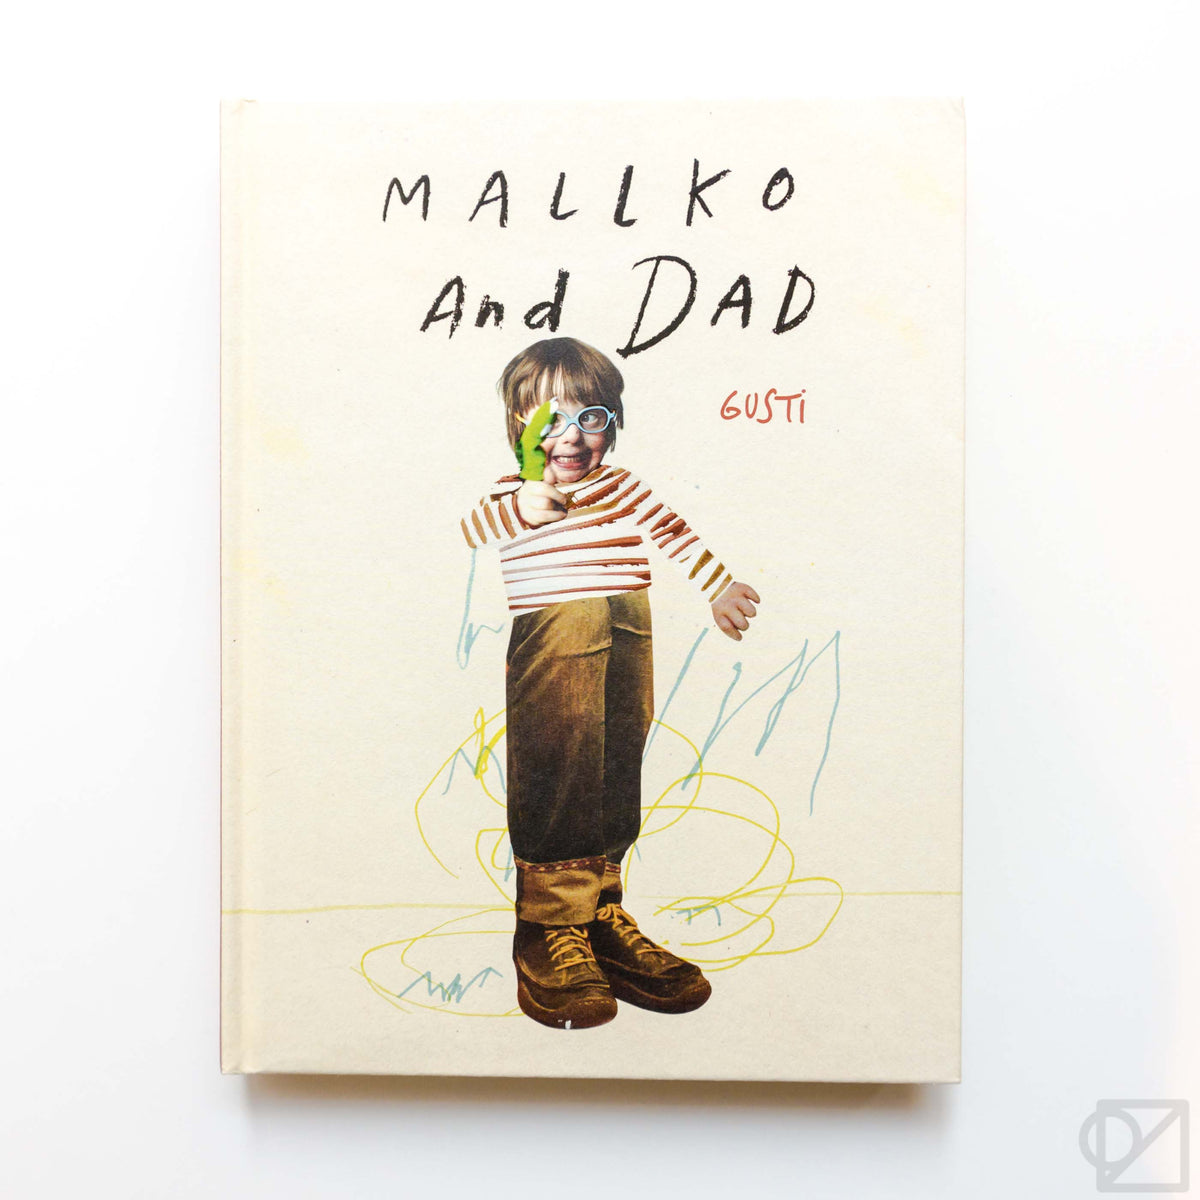 Mallko and Dad